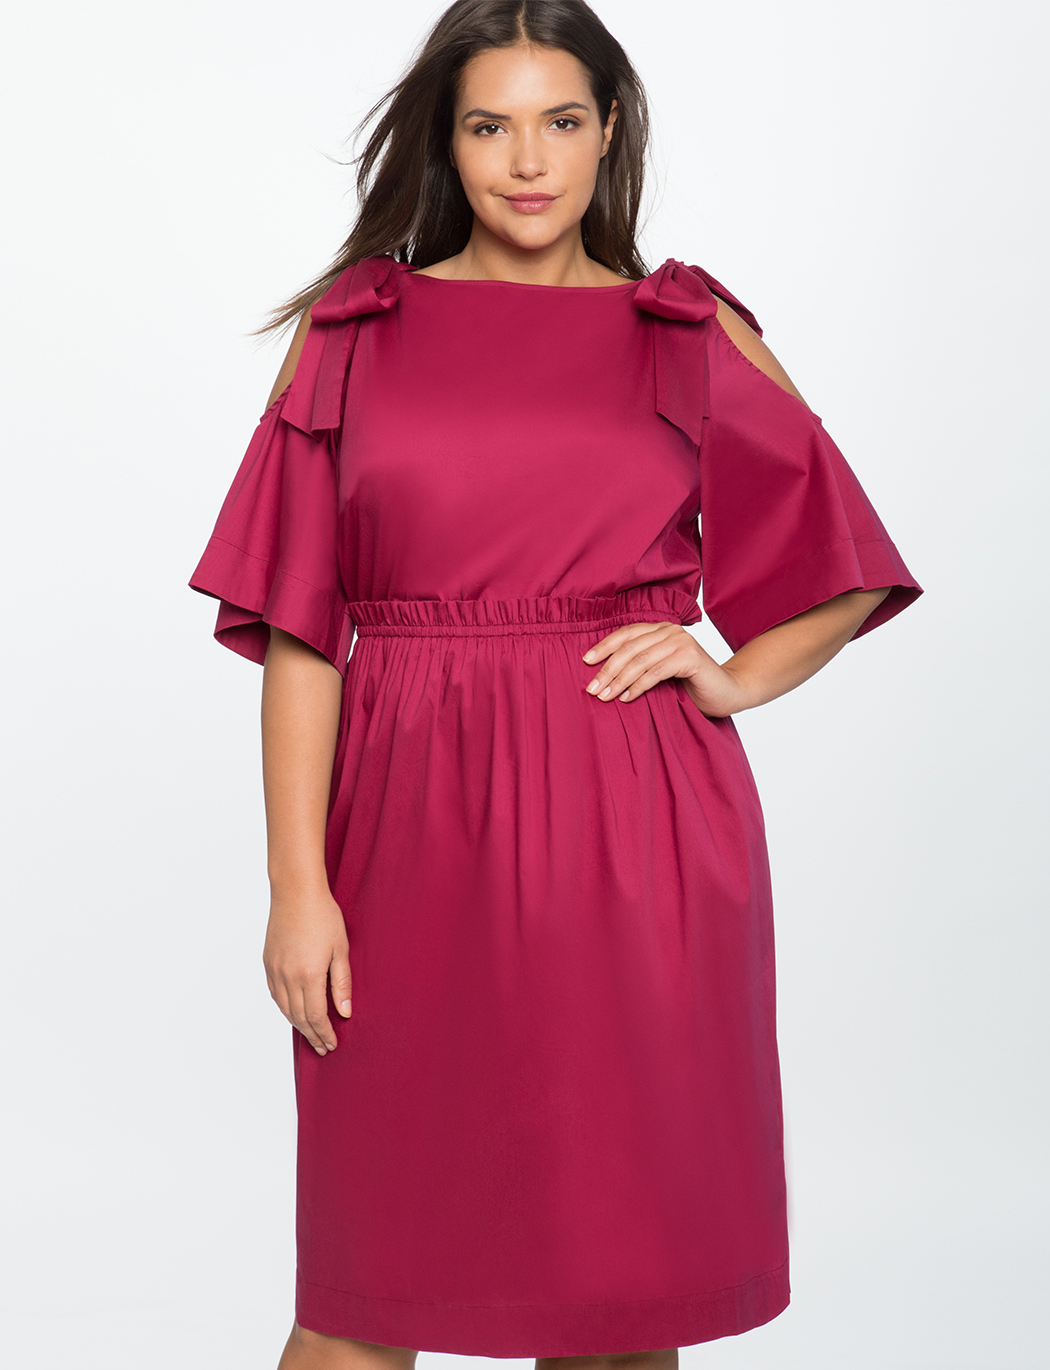 05ec204a134 Bow Tie Cold Shoulder Dress